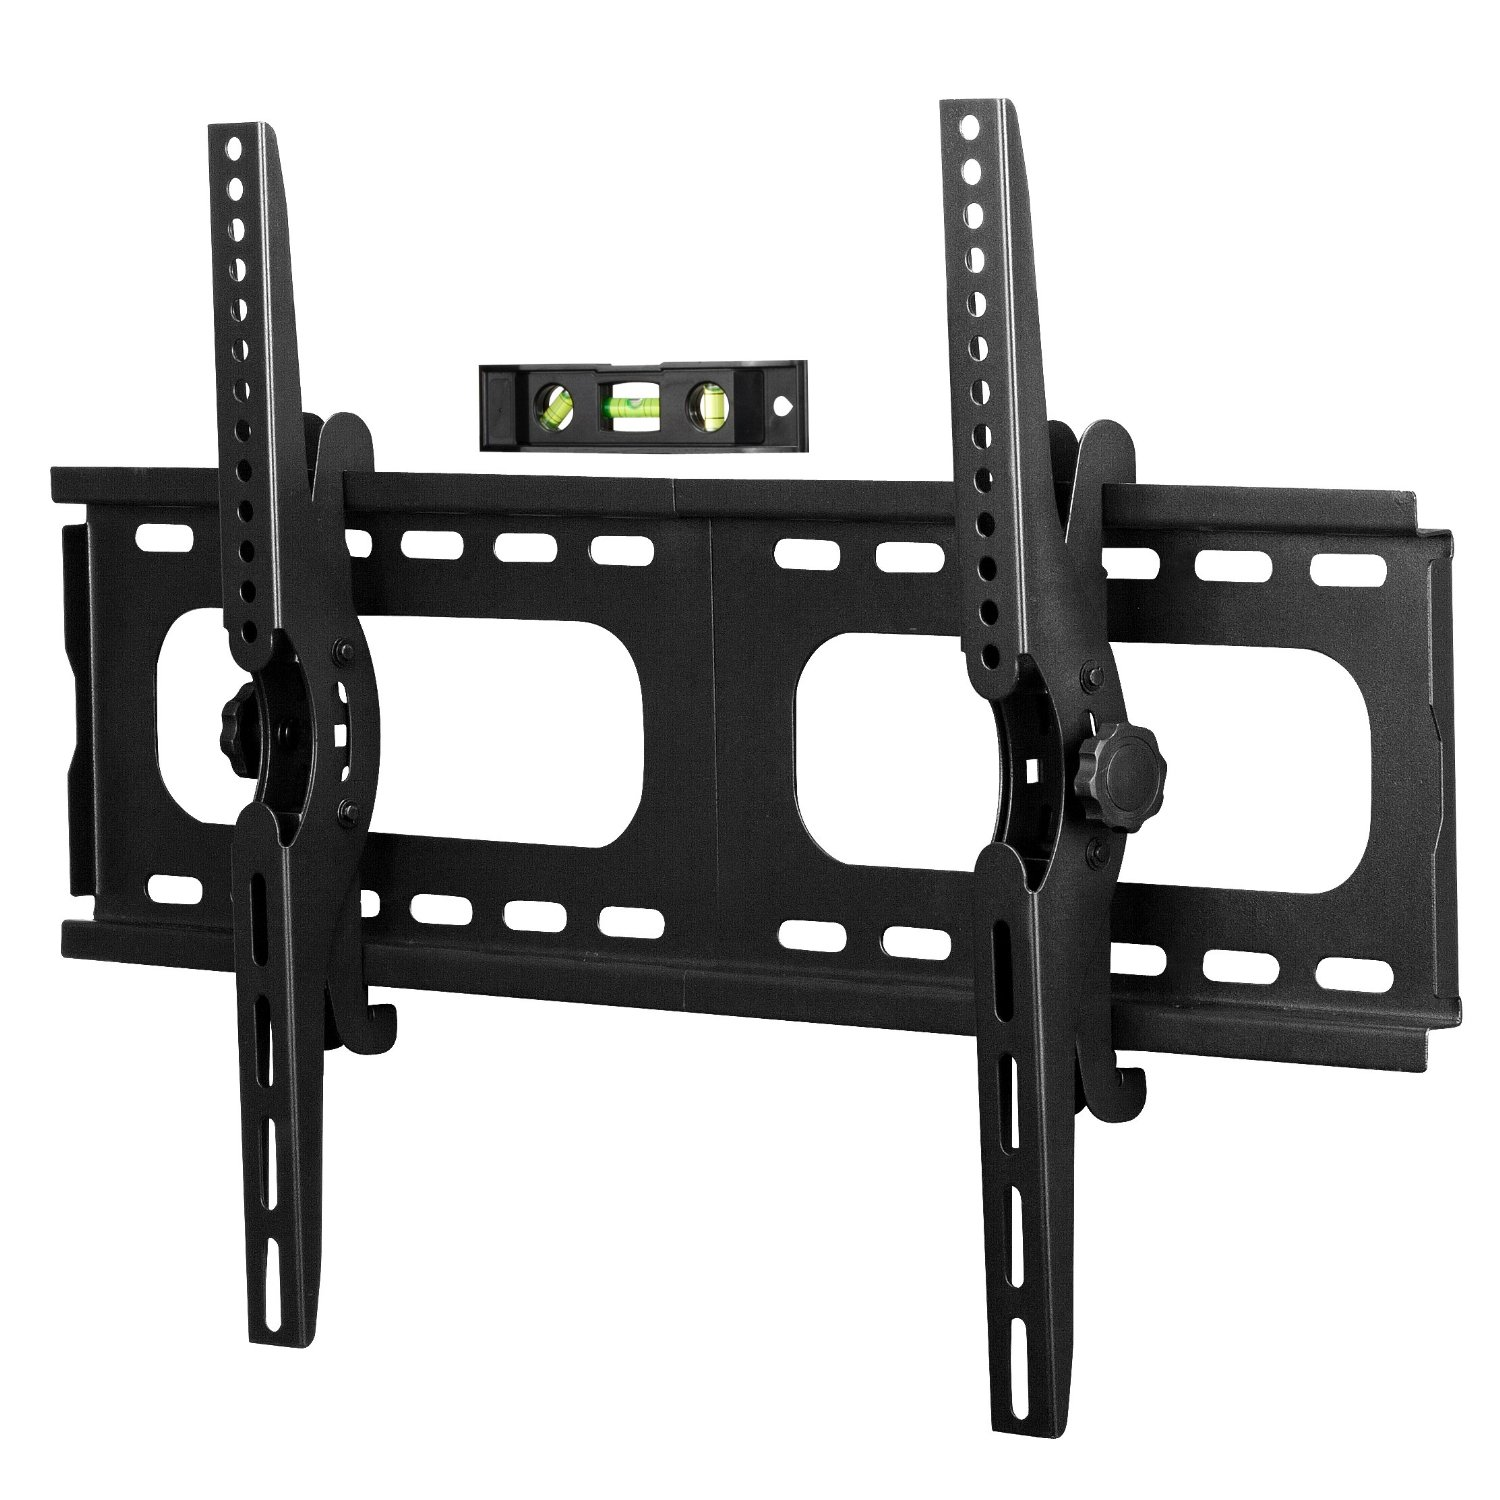 Huggy les bons tuyaux support mural pour tv lcd led plasma jusqu 39 60 qu - Support mural tv led ...